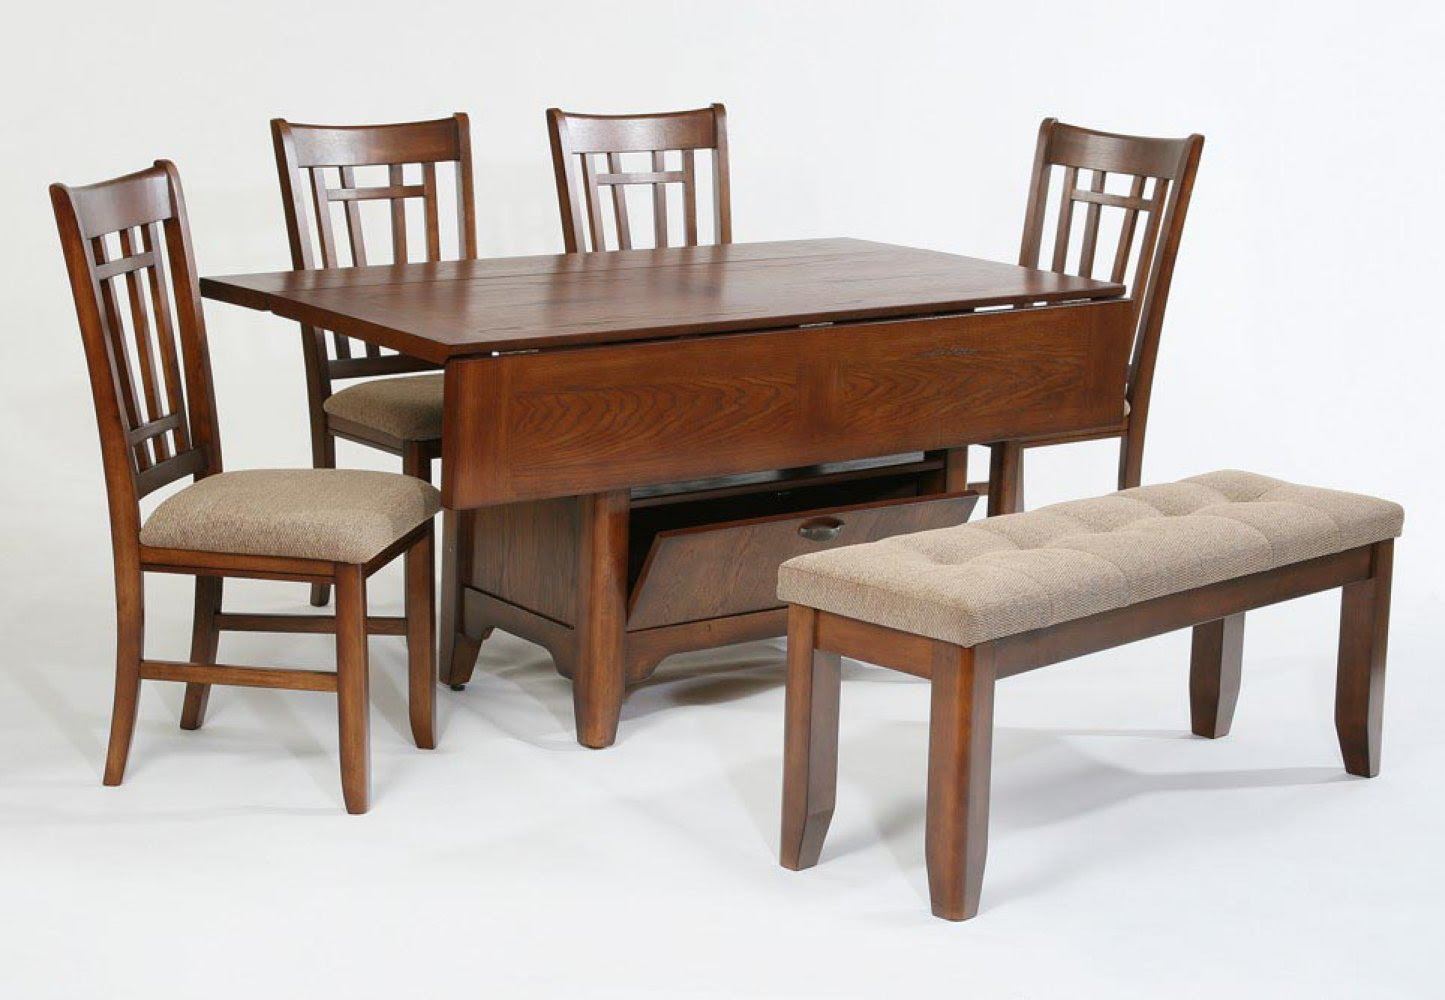 Compact Dining Space Arrangement with Drop Leaf Dining Table for Small Spaces  HomesFeed